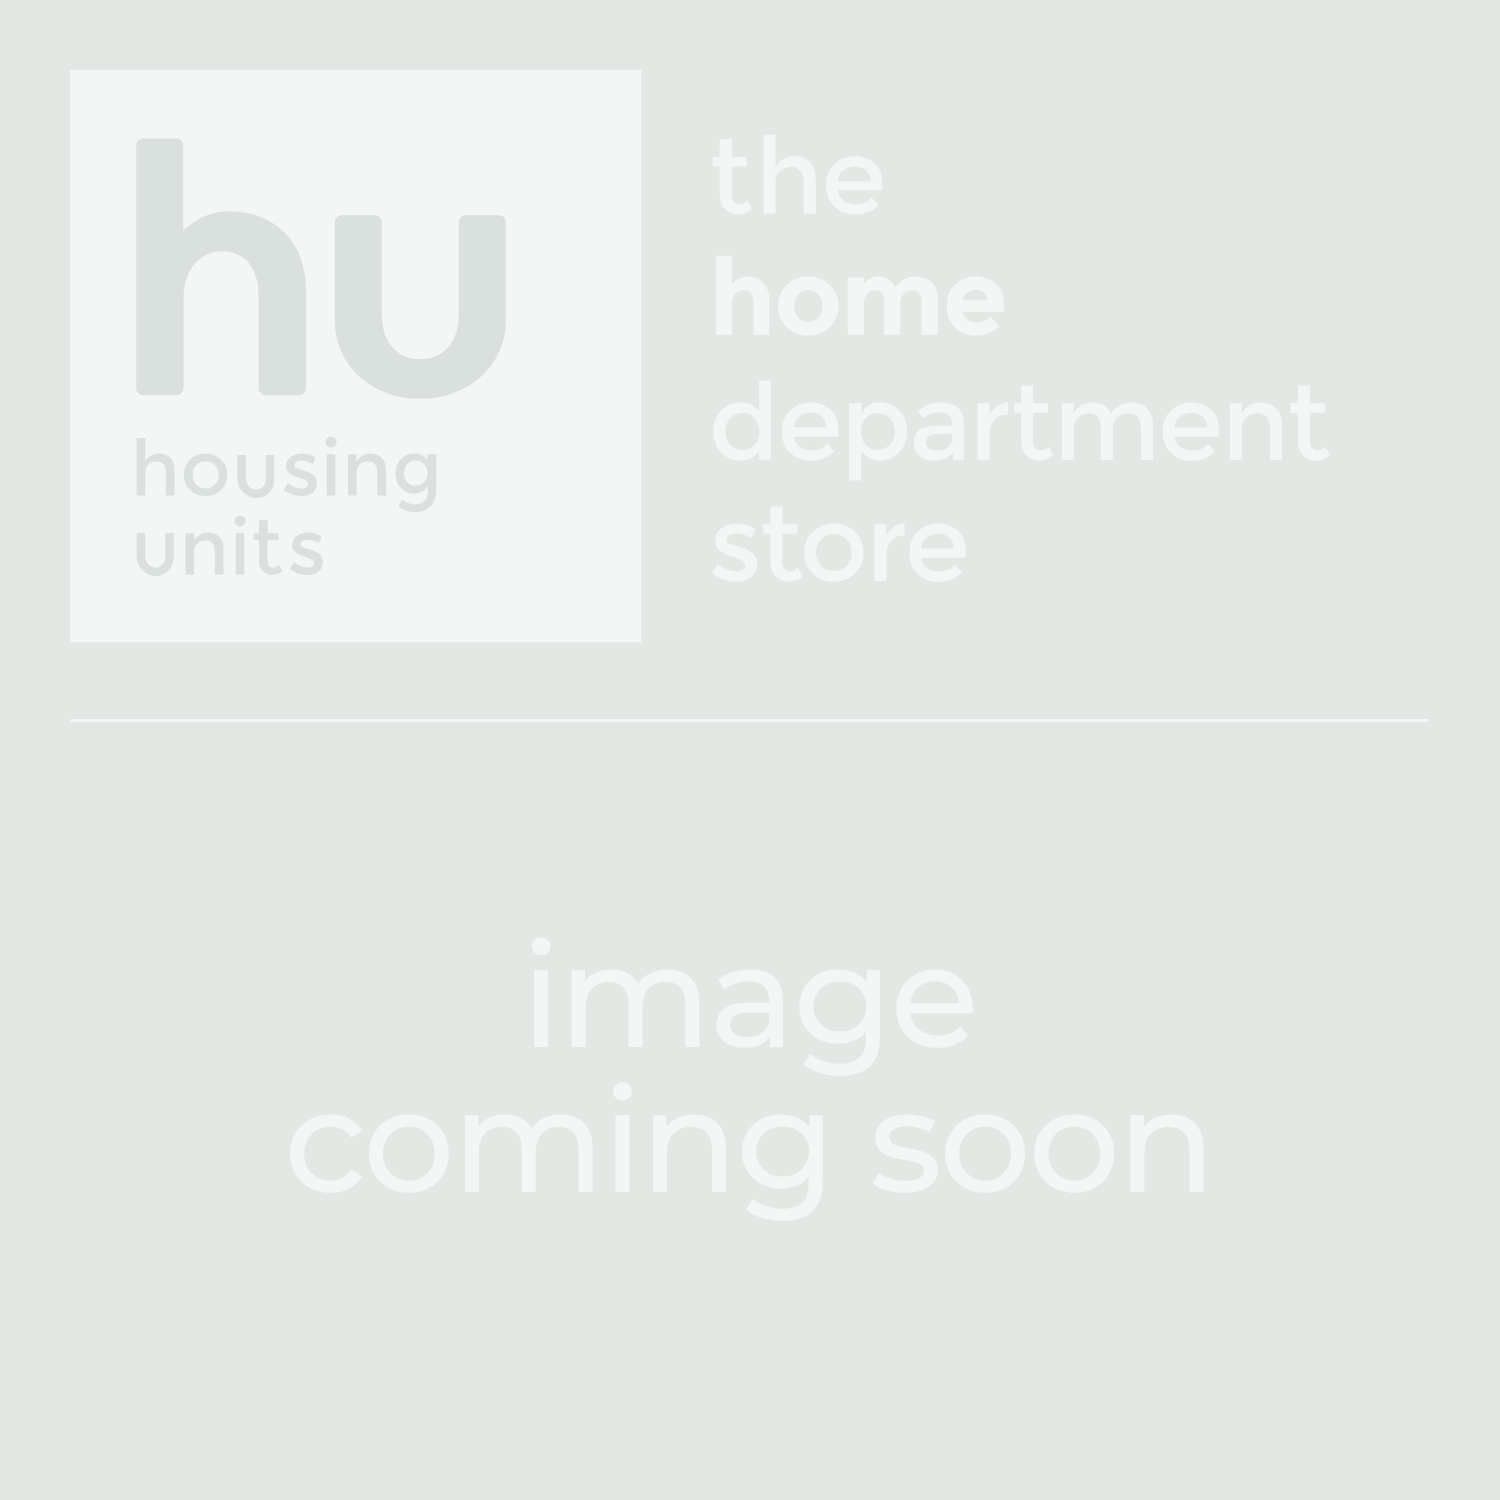 The iCandy Peach Phantom Beluga Pushchair exudes wonderfully minimalistic and discreet branding, the utmost care and respect has been taken to create the most comfortable of rides for baby.